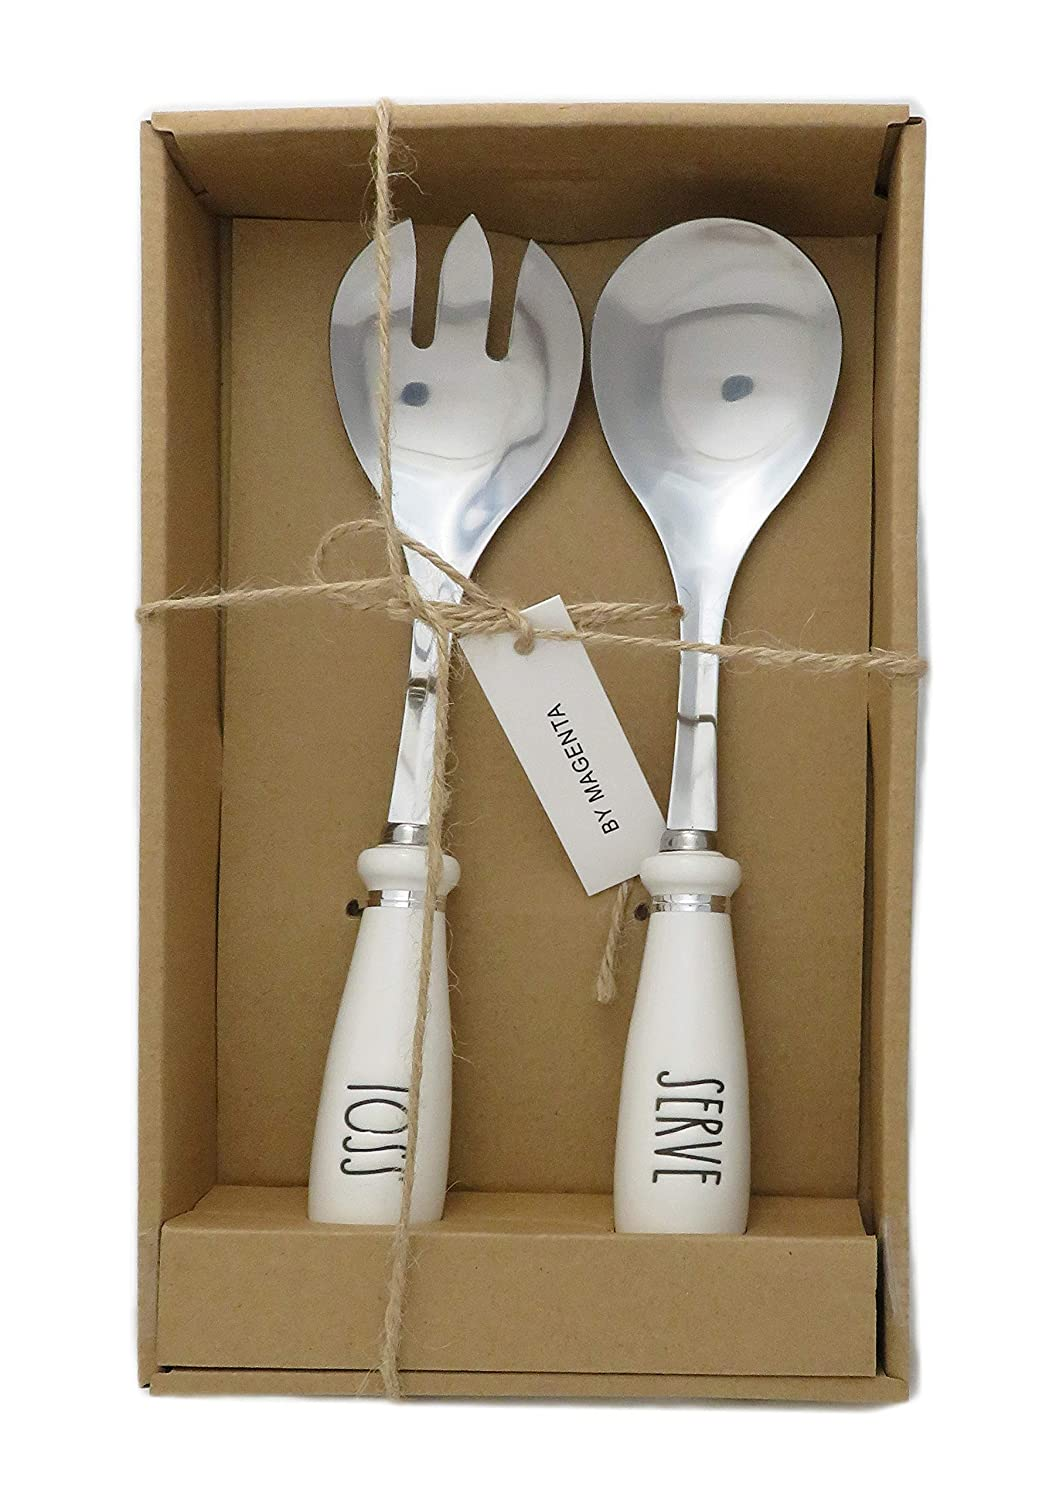 Rae Dunn By Magenta TOSS & SERVE Large Letter LL Spoon & Fork Serving Utensils With Ceramic Handles